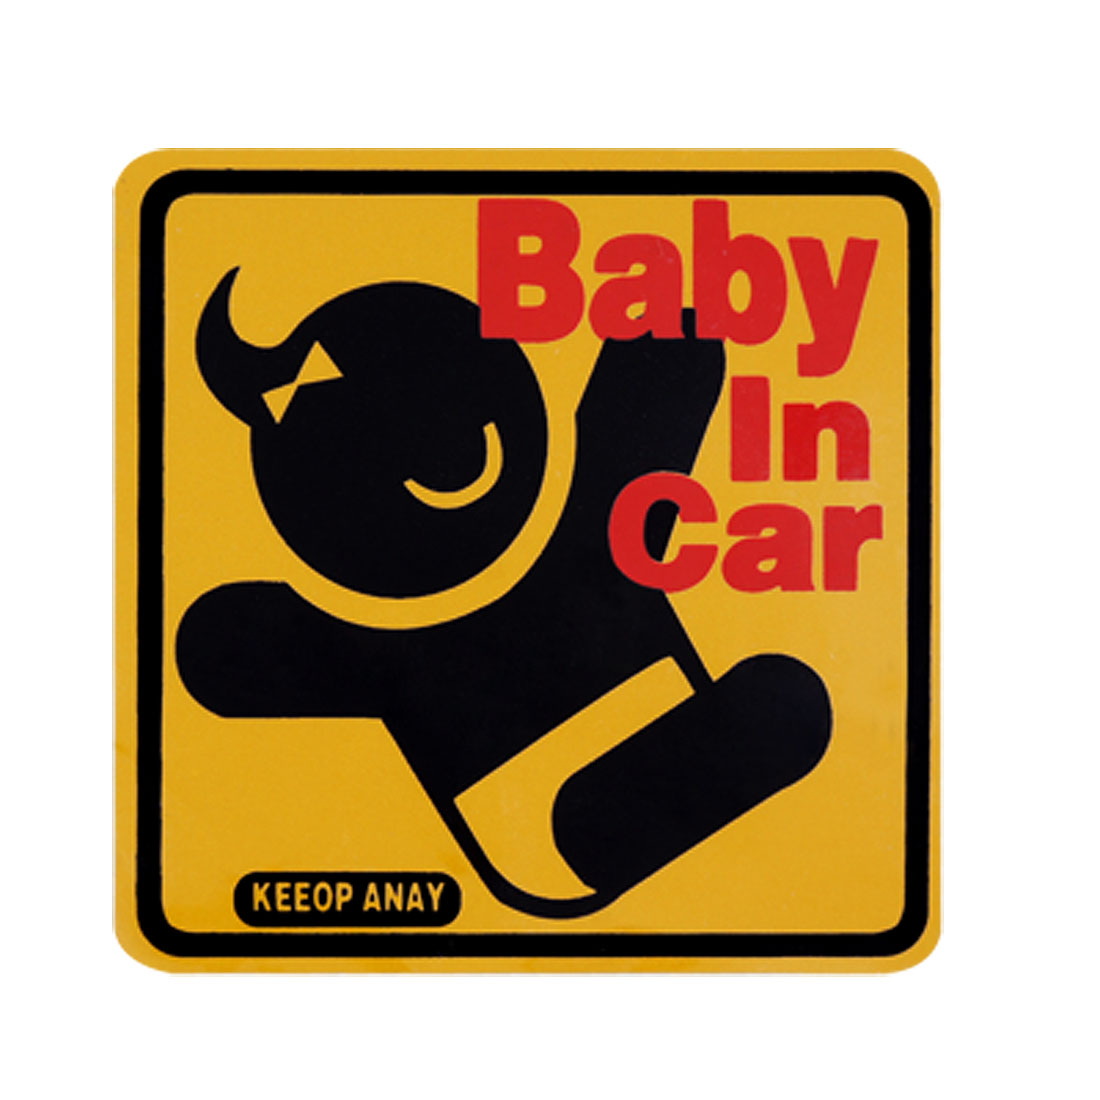 Baby In Car Vehicle Yellow Vinyl Square Sticker Decal